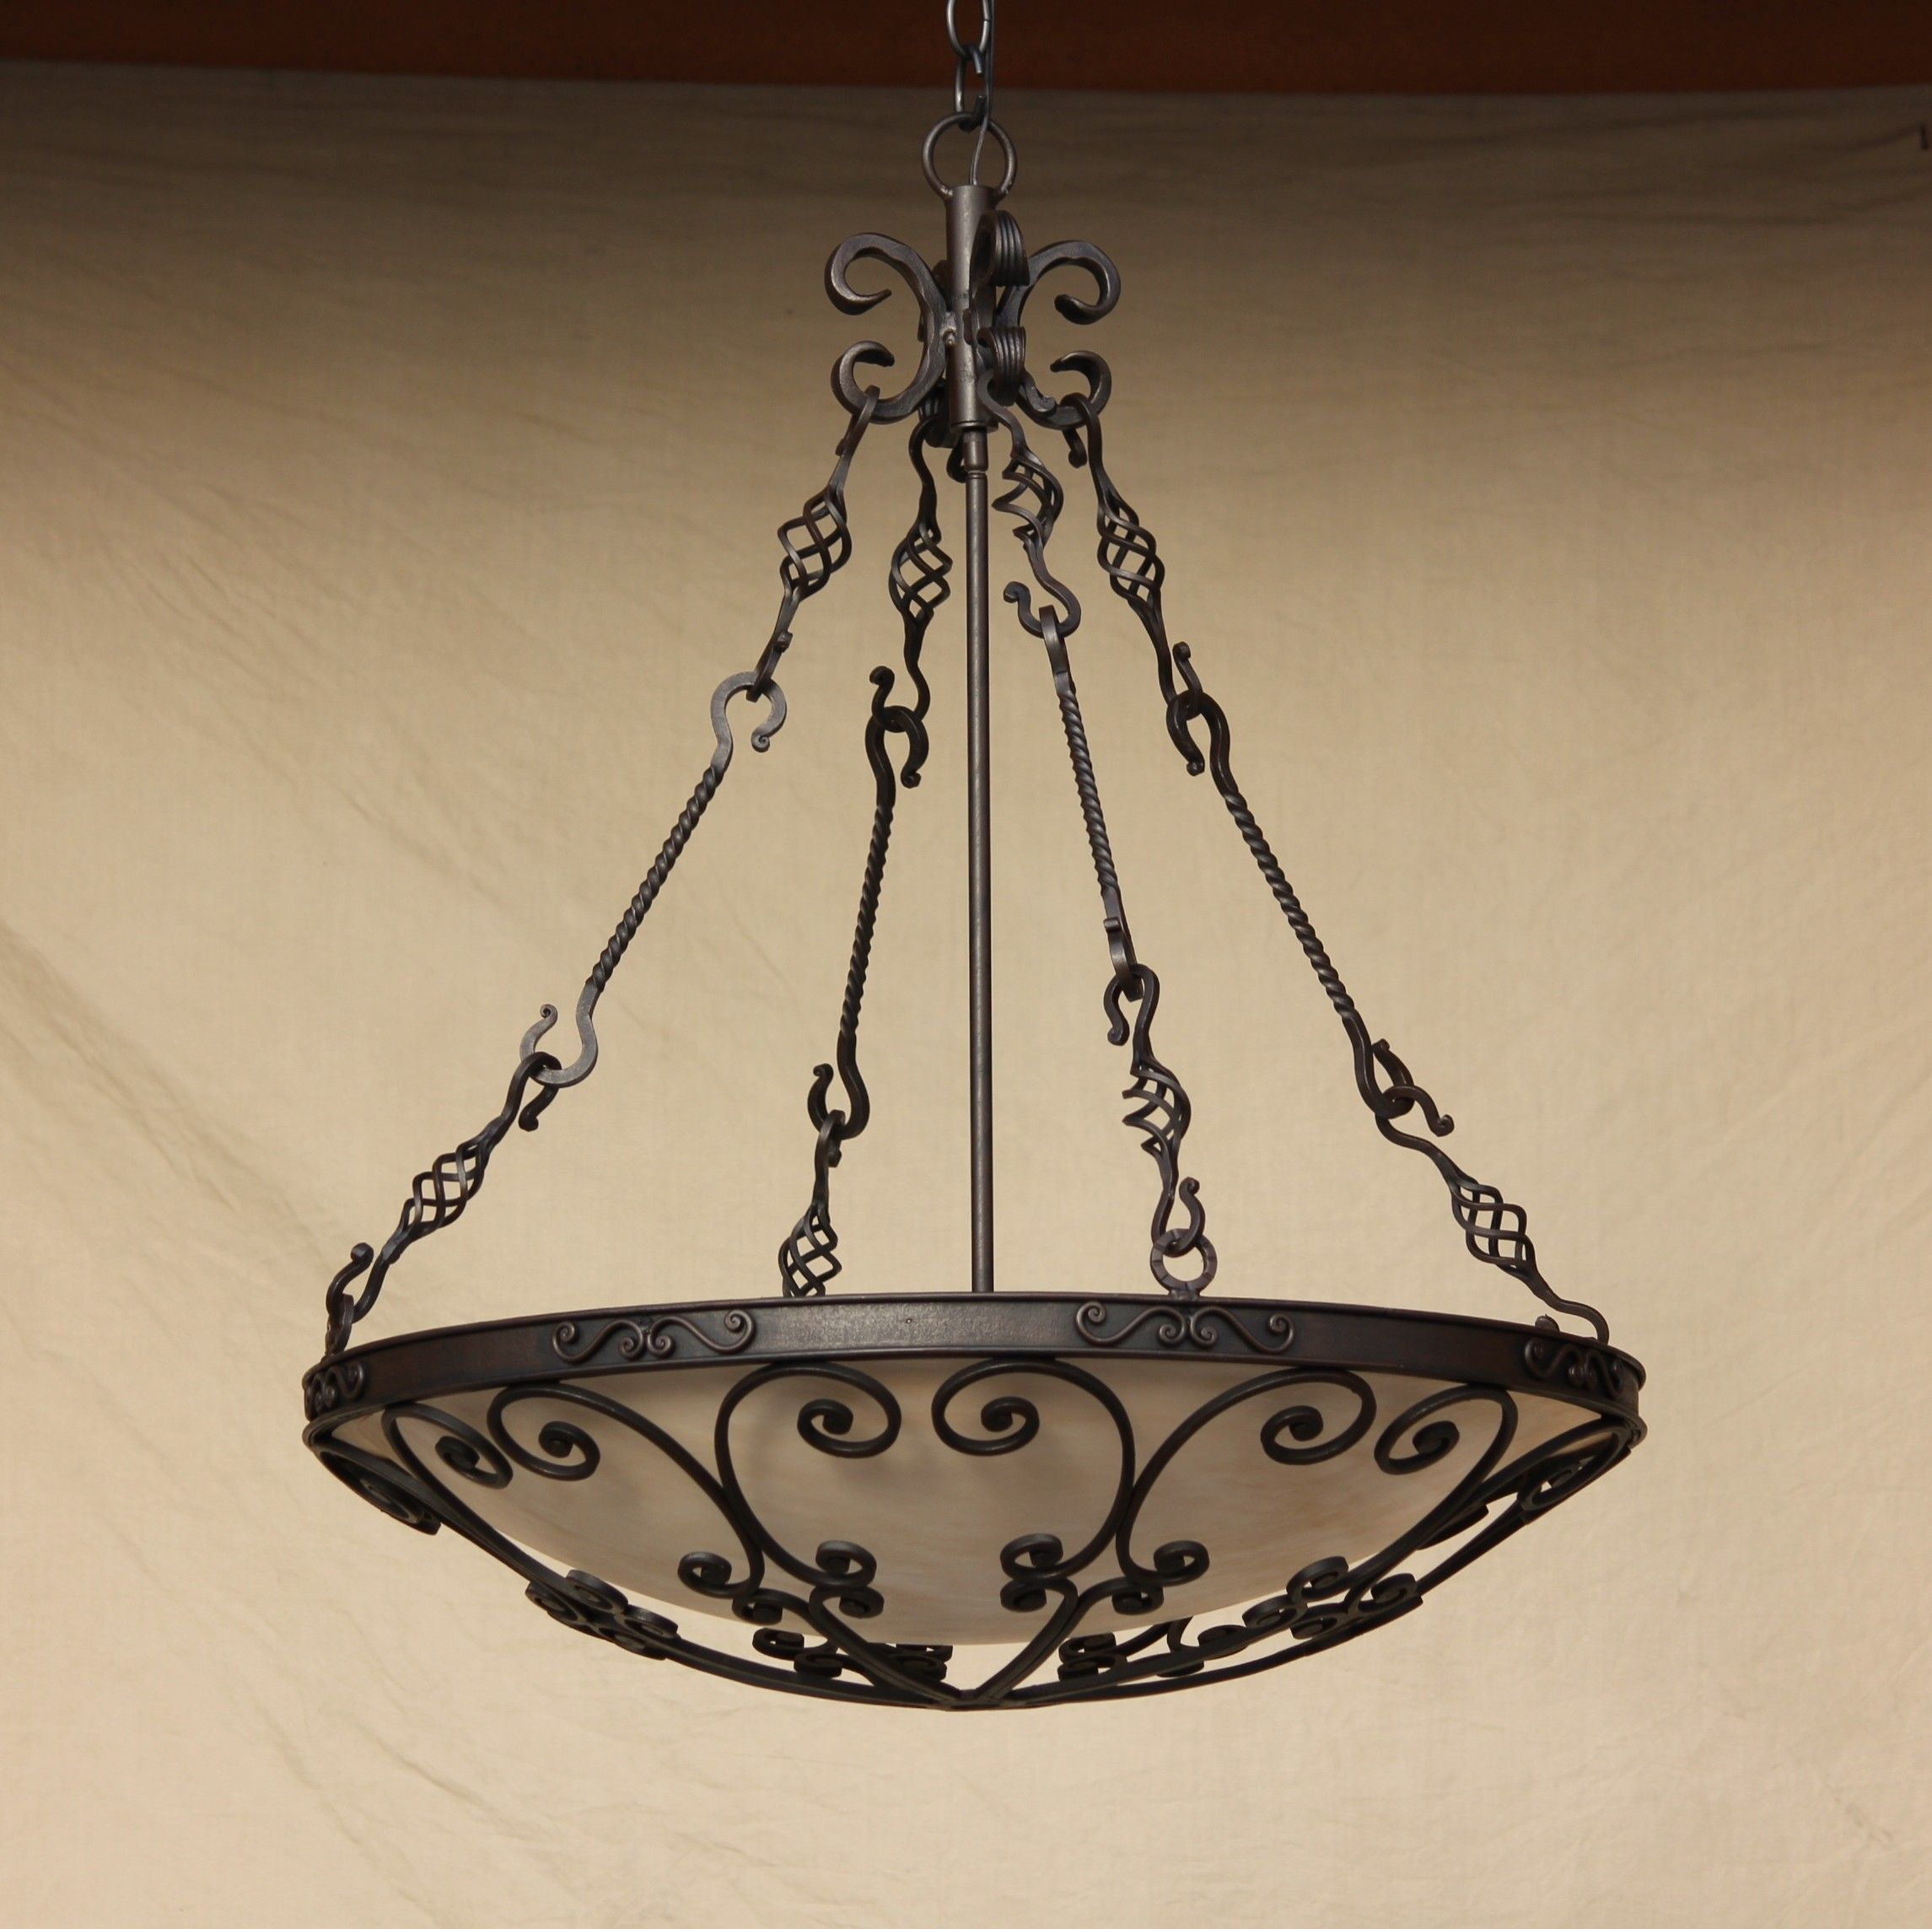 Pendant Lighting Hanging Hand Forged Wrought Iron Tuscan